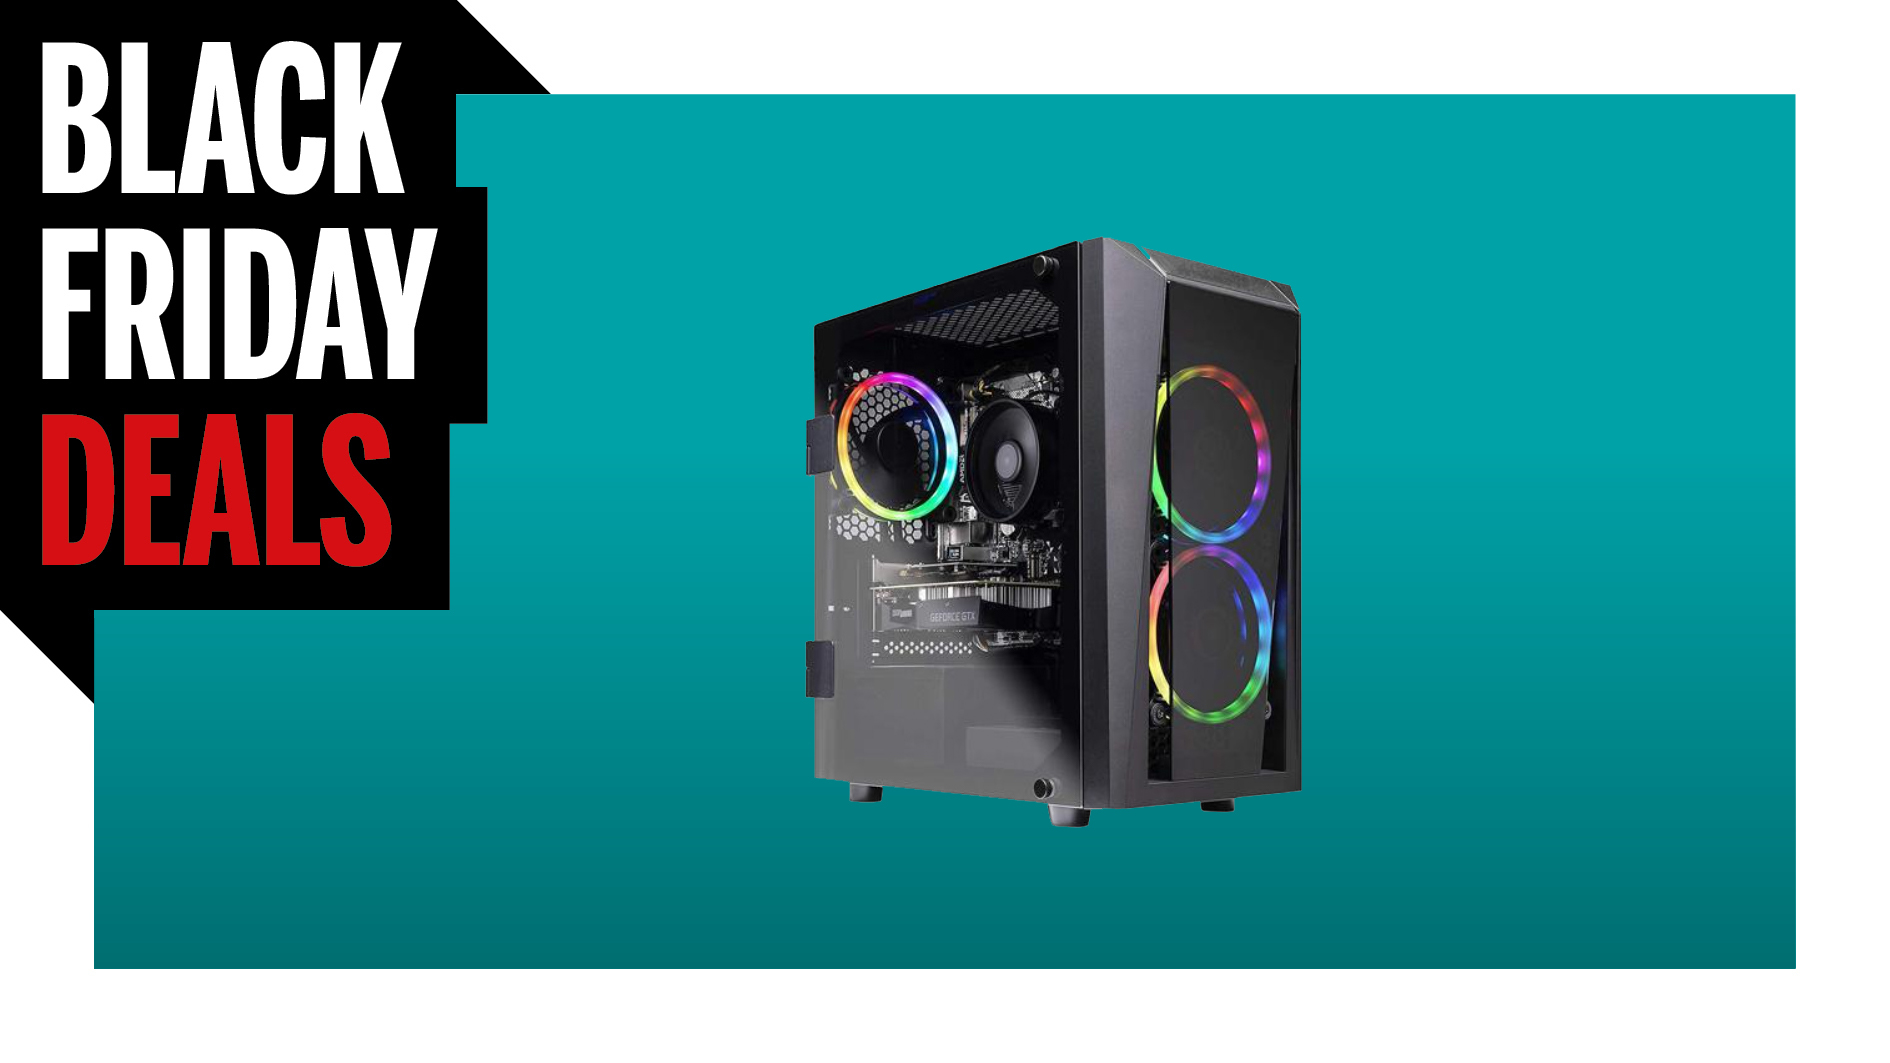 Black Friday Gaming PC Deal: Score this SkyTech gaming PC for only $550